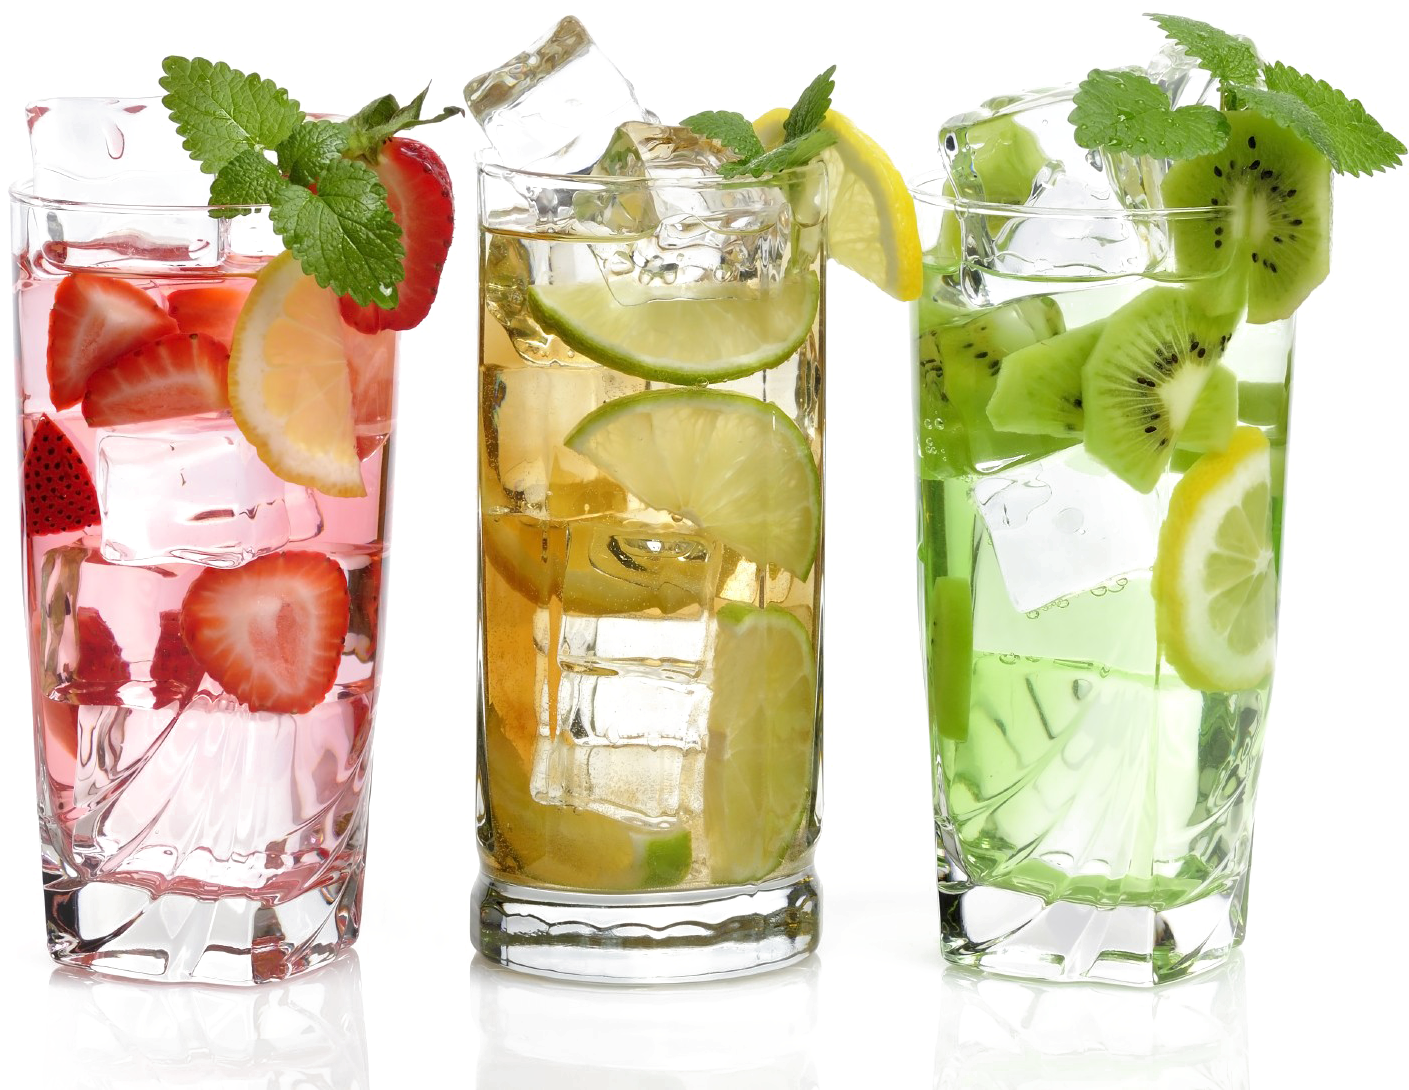 Ice Drink Transparent Png - Bubble Lick Edible Bubbles (1575x1219), Png Download